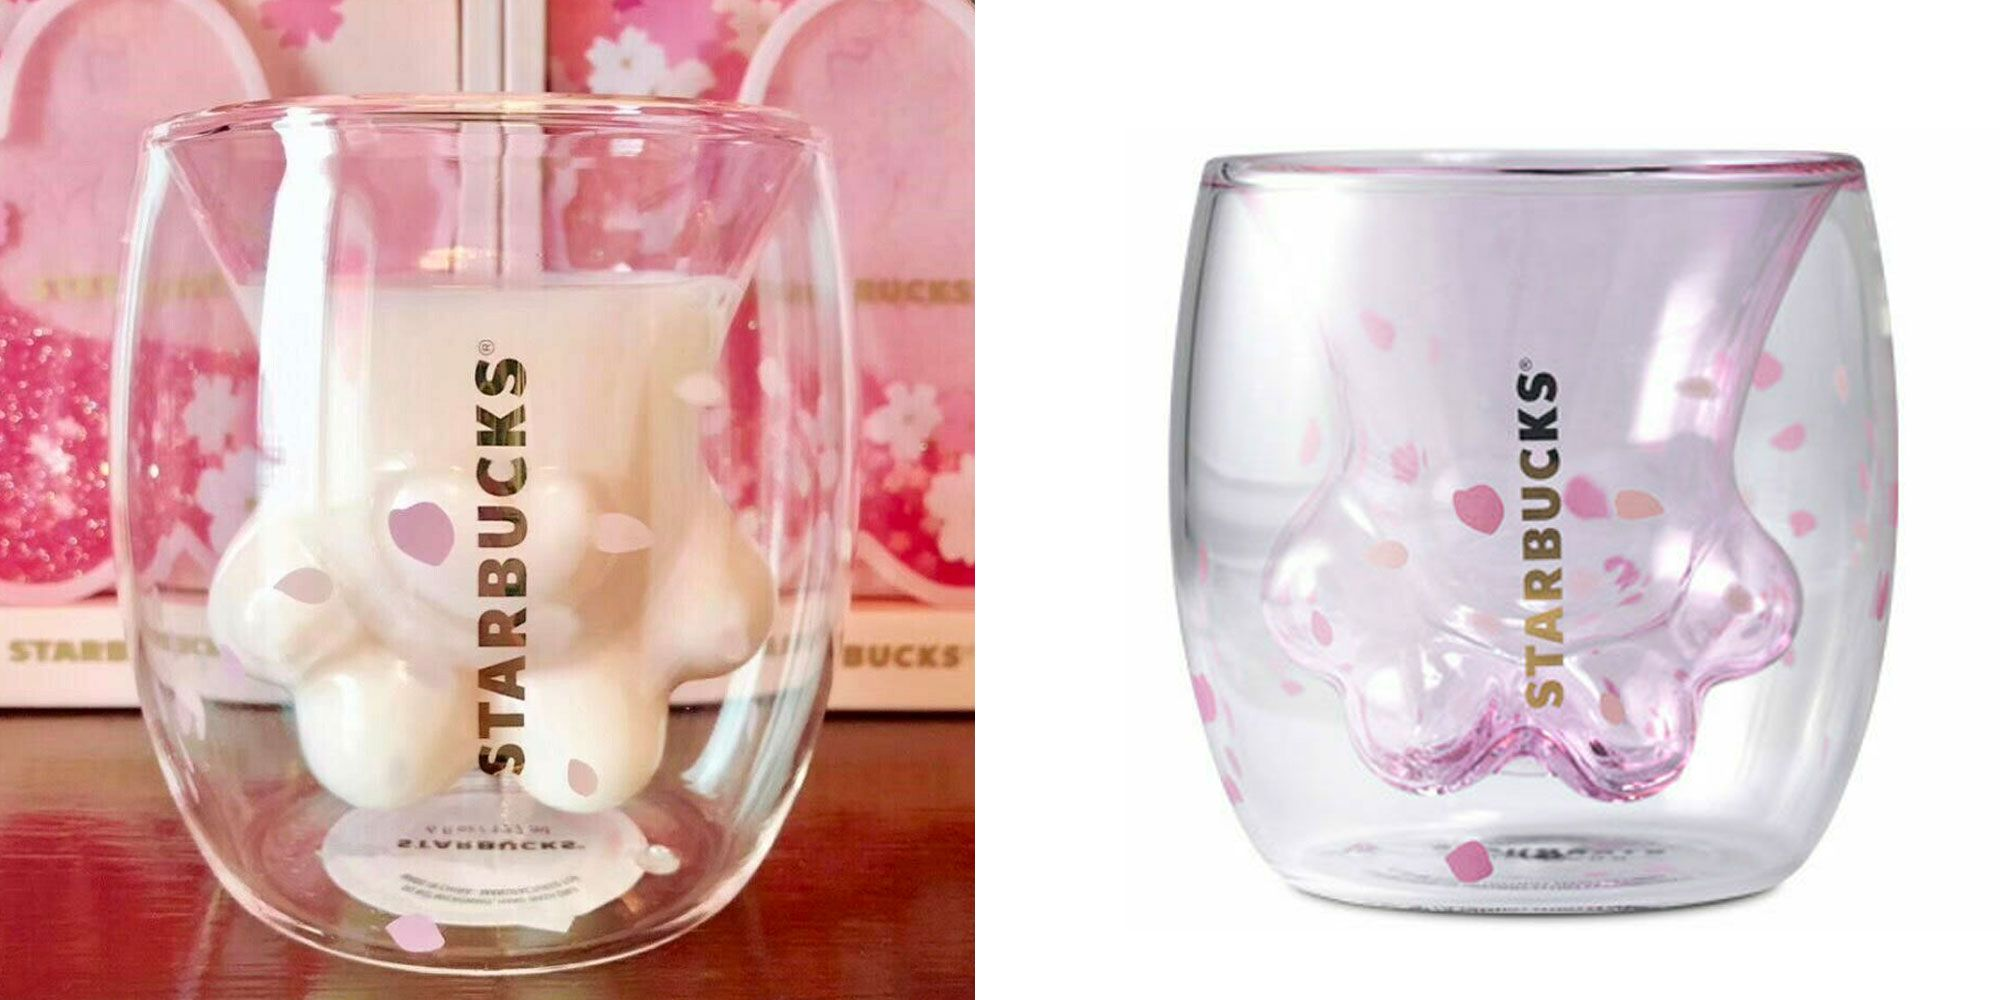 Limited Edition Cat Paw Cups Lead To Brawl In A Starbucks In China